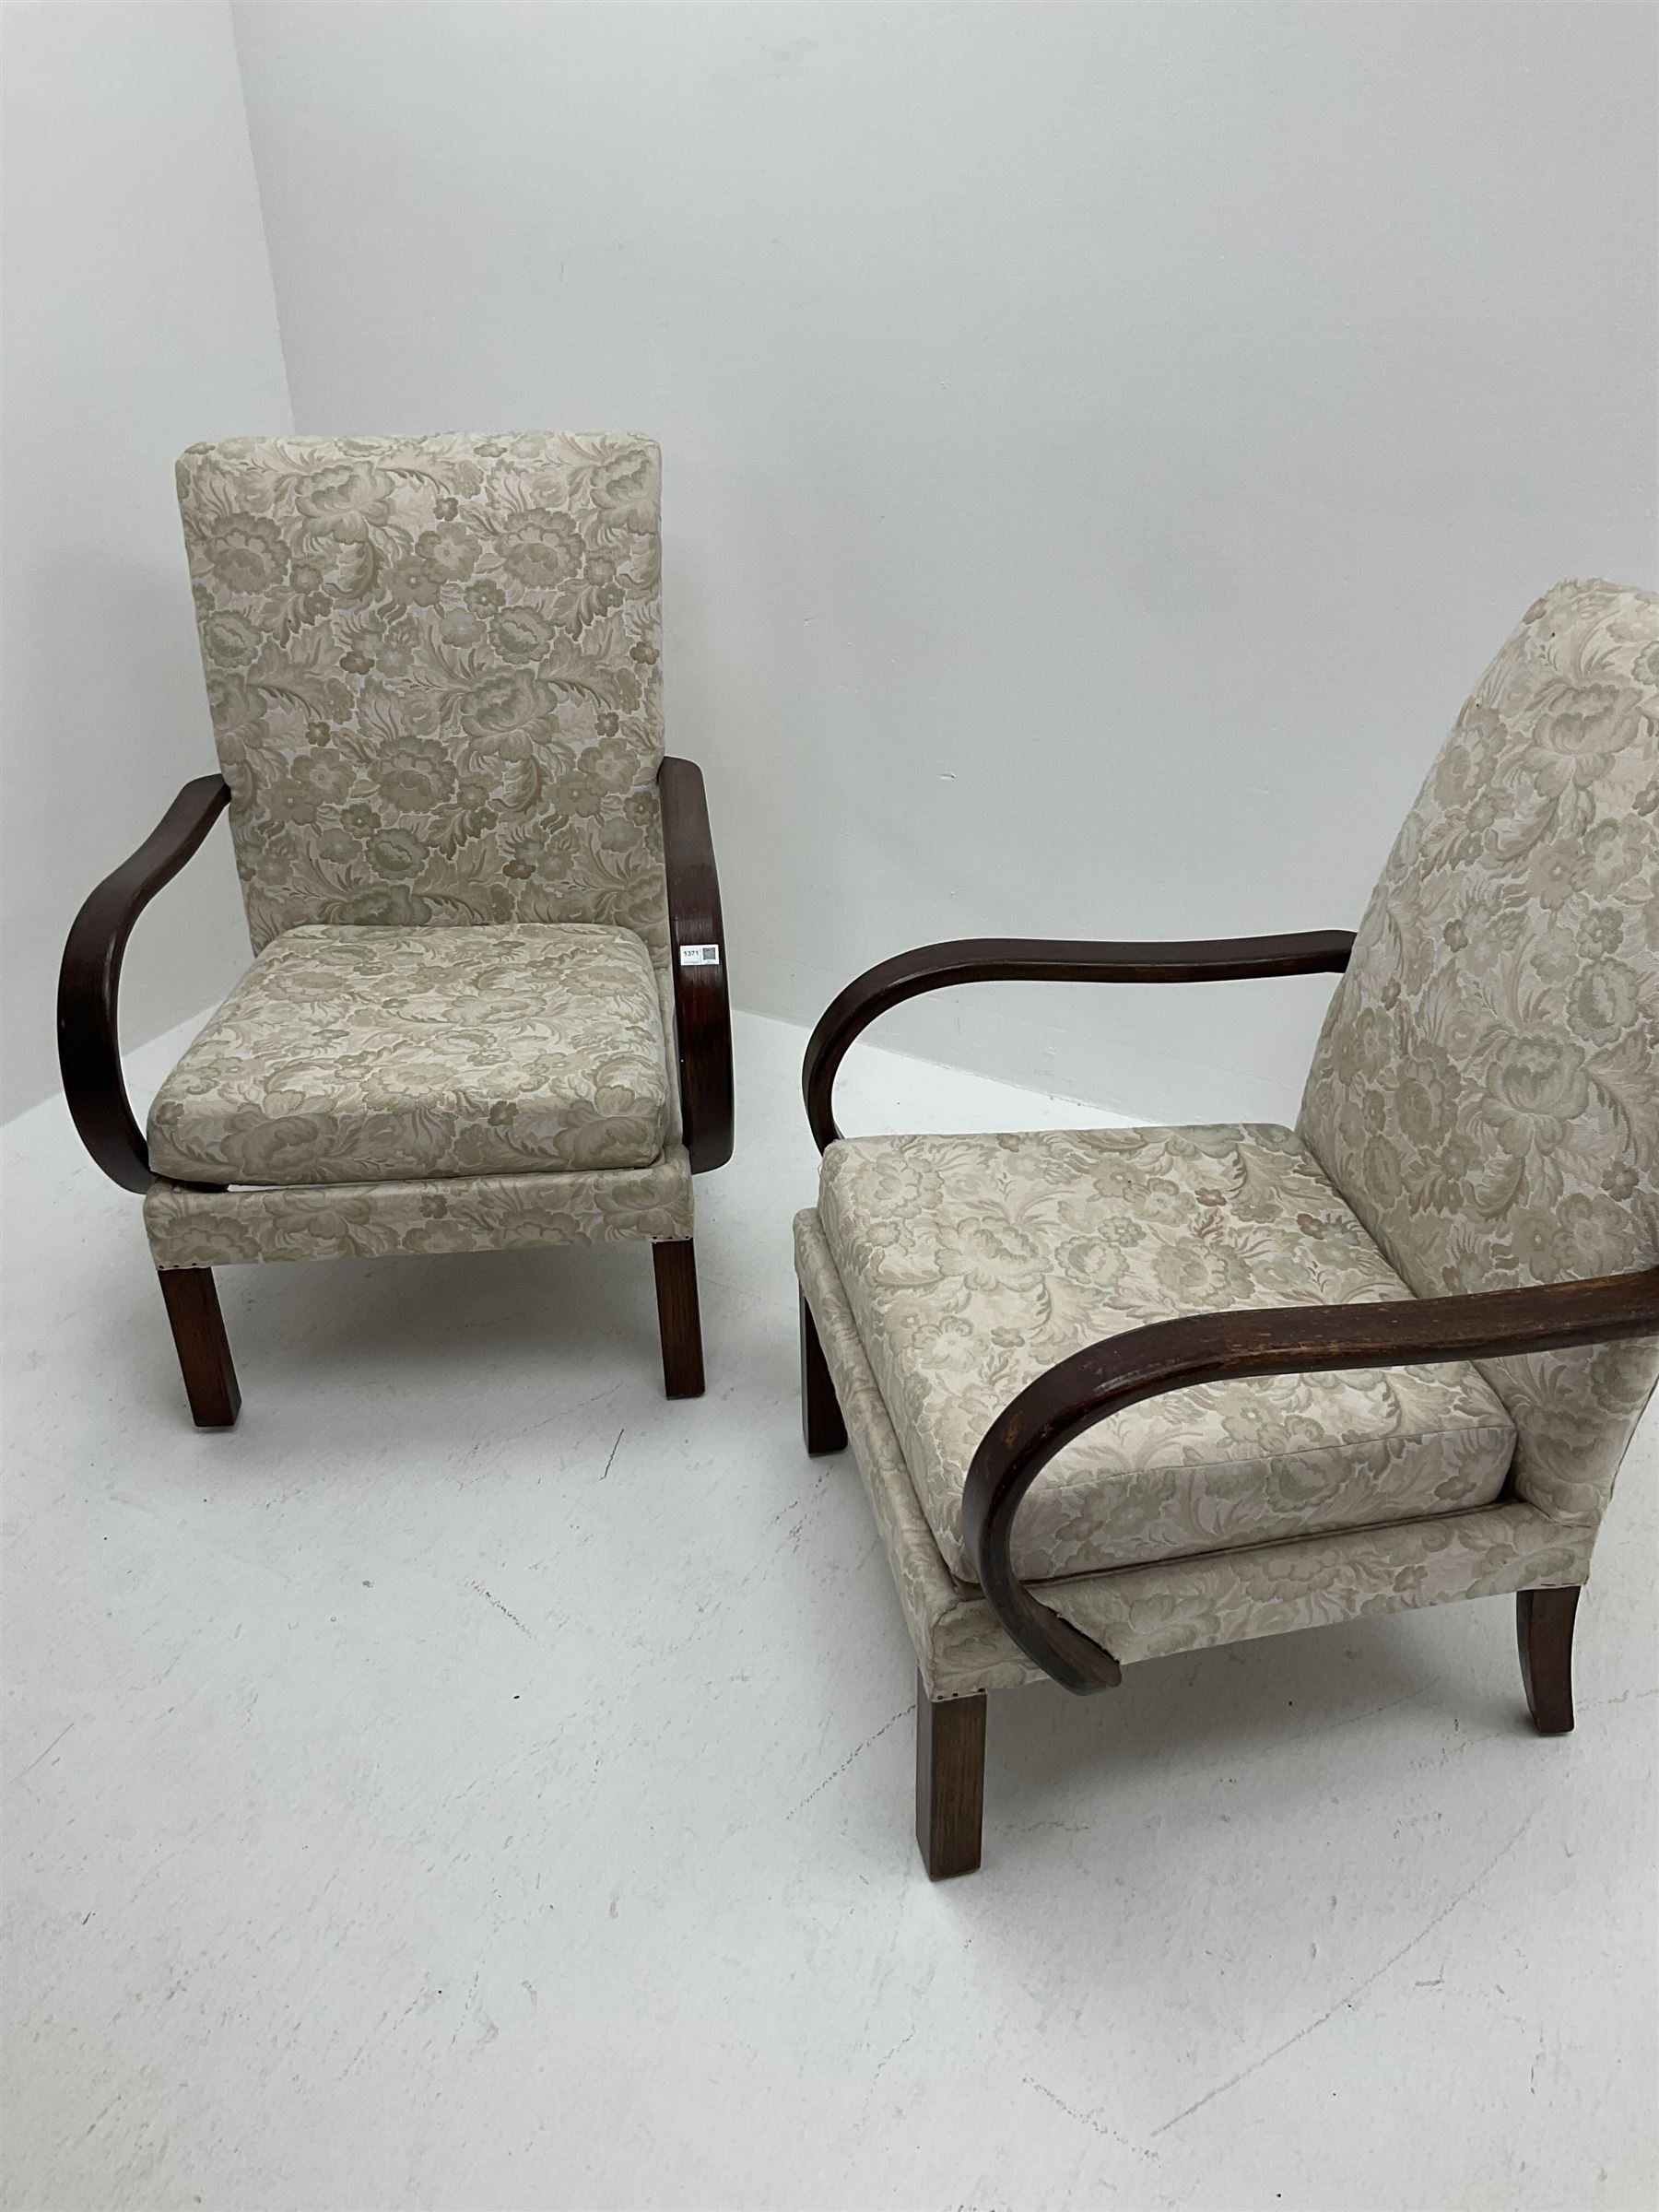 Pair of Parker Knoll easy chairs - Image 2 of 2